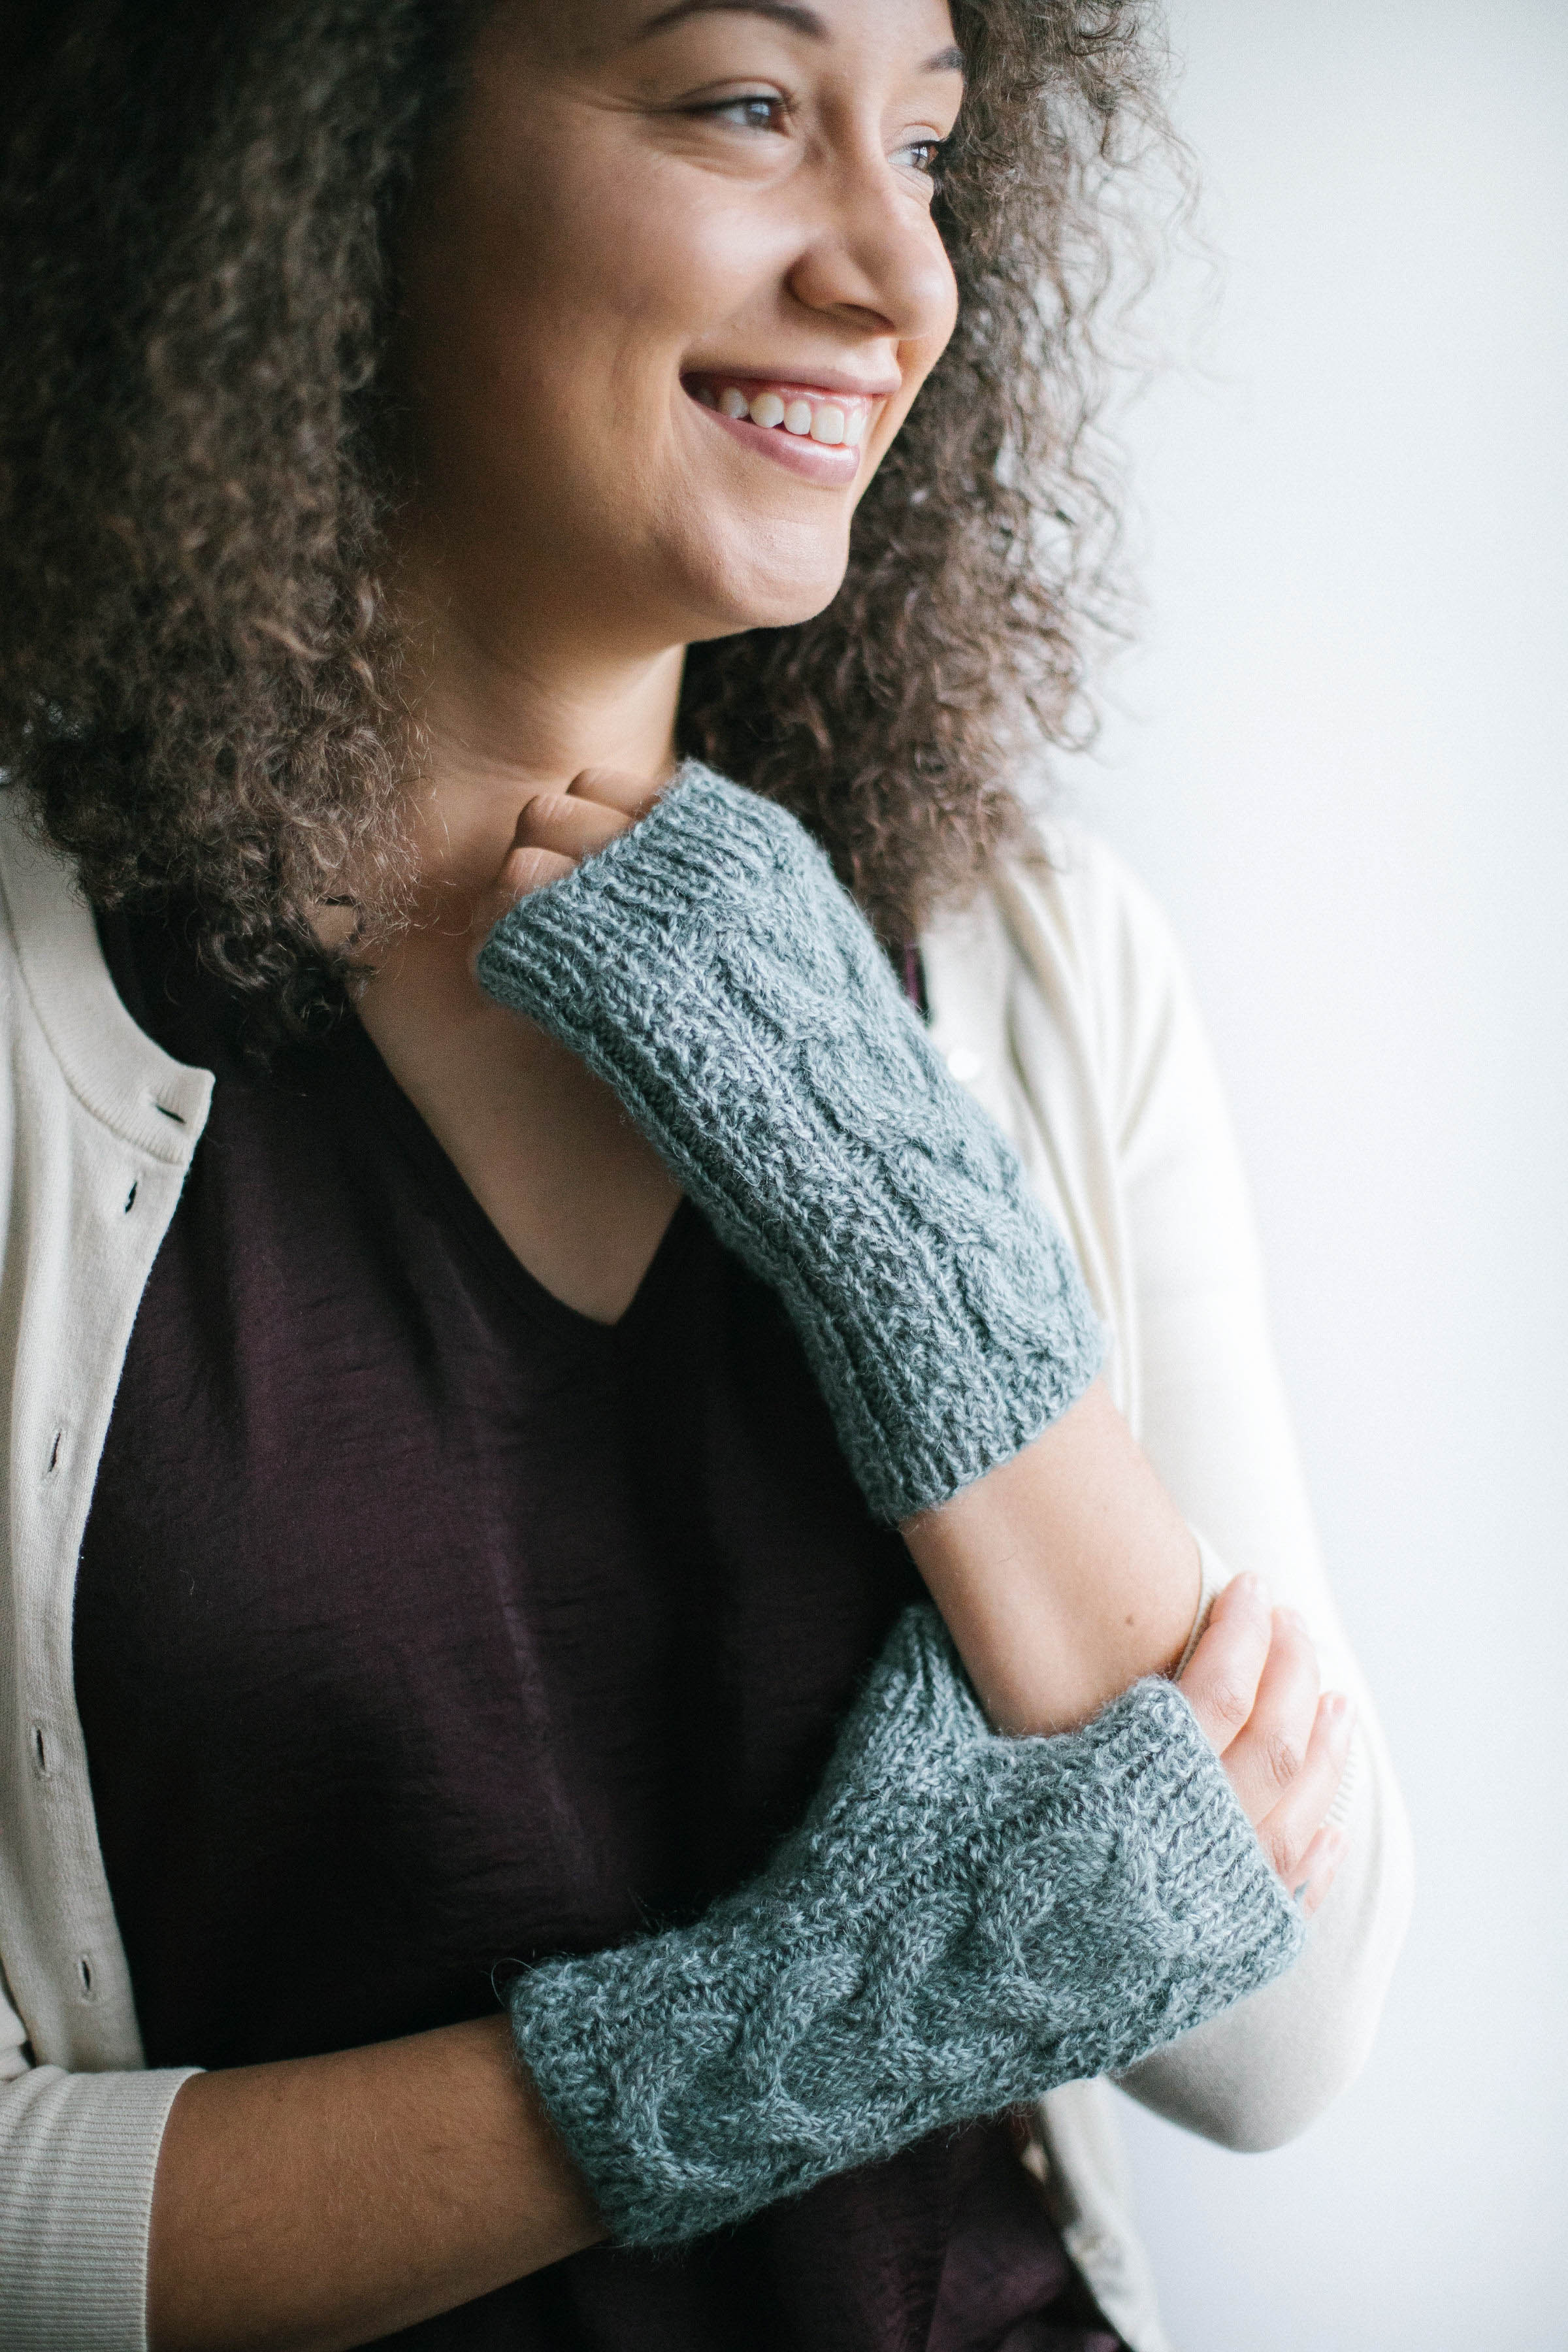 Cabled Fingerless Mitts - Salt River Mills